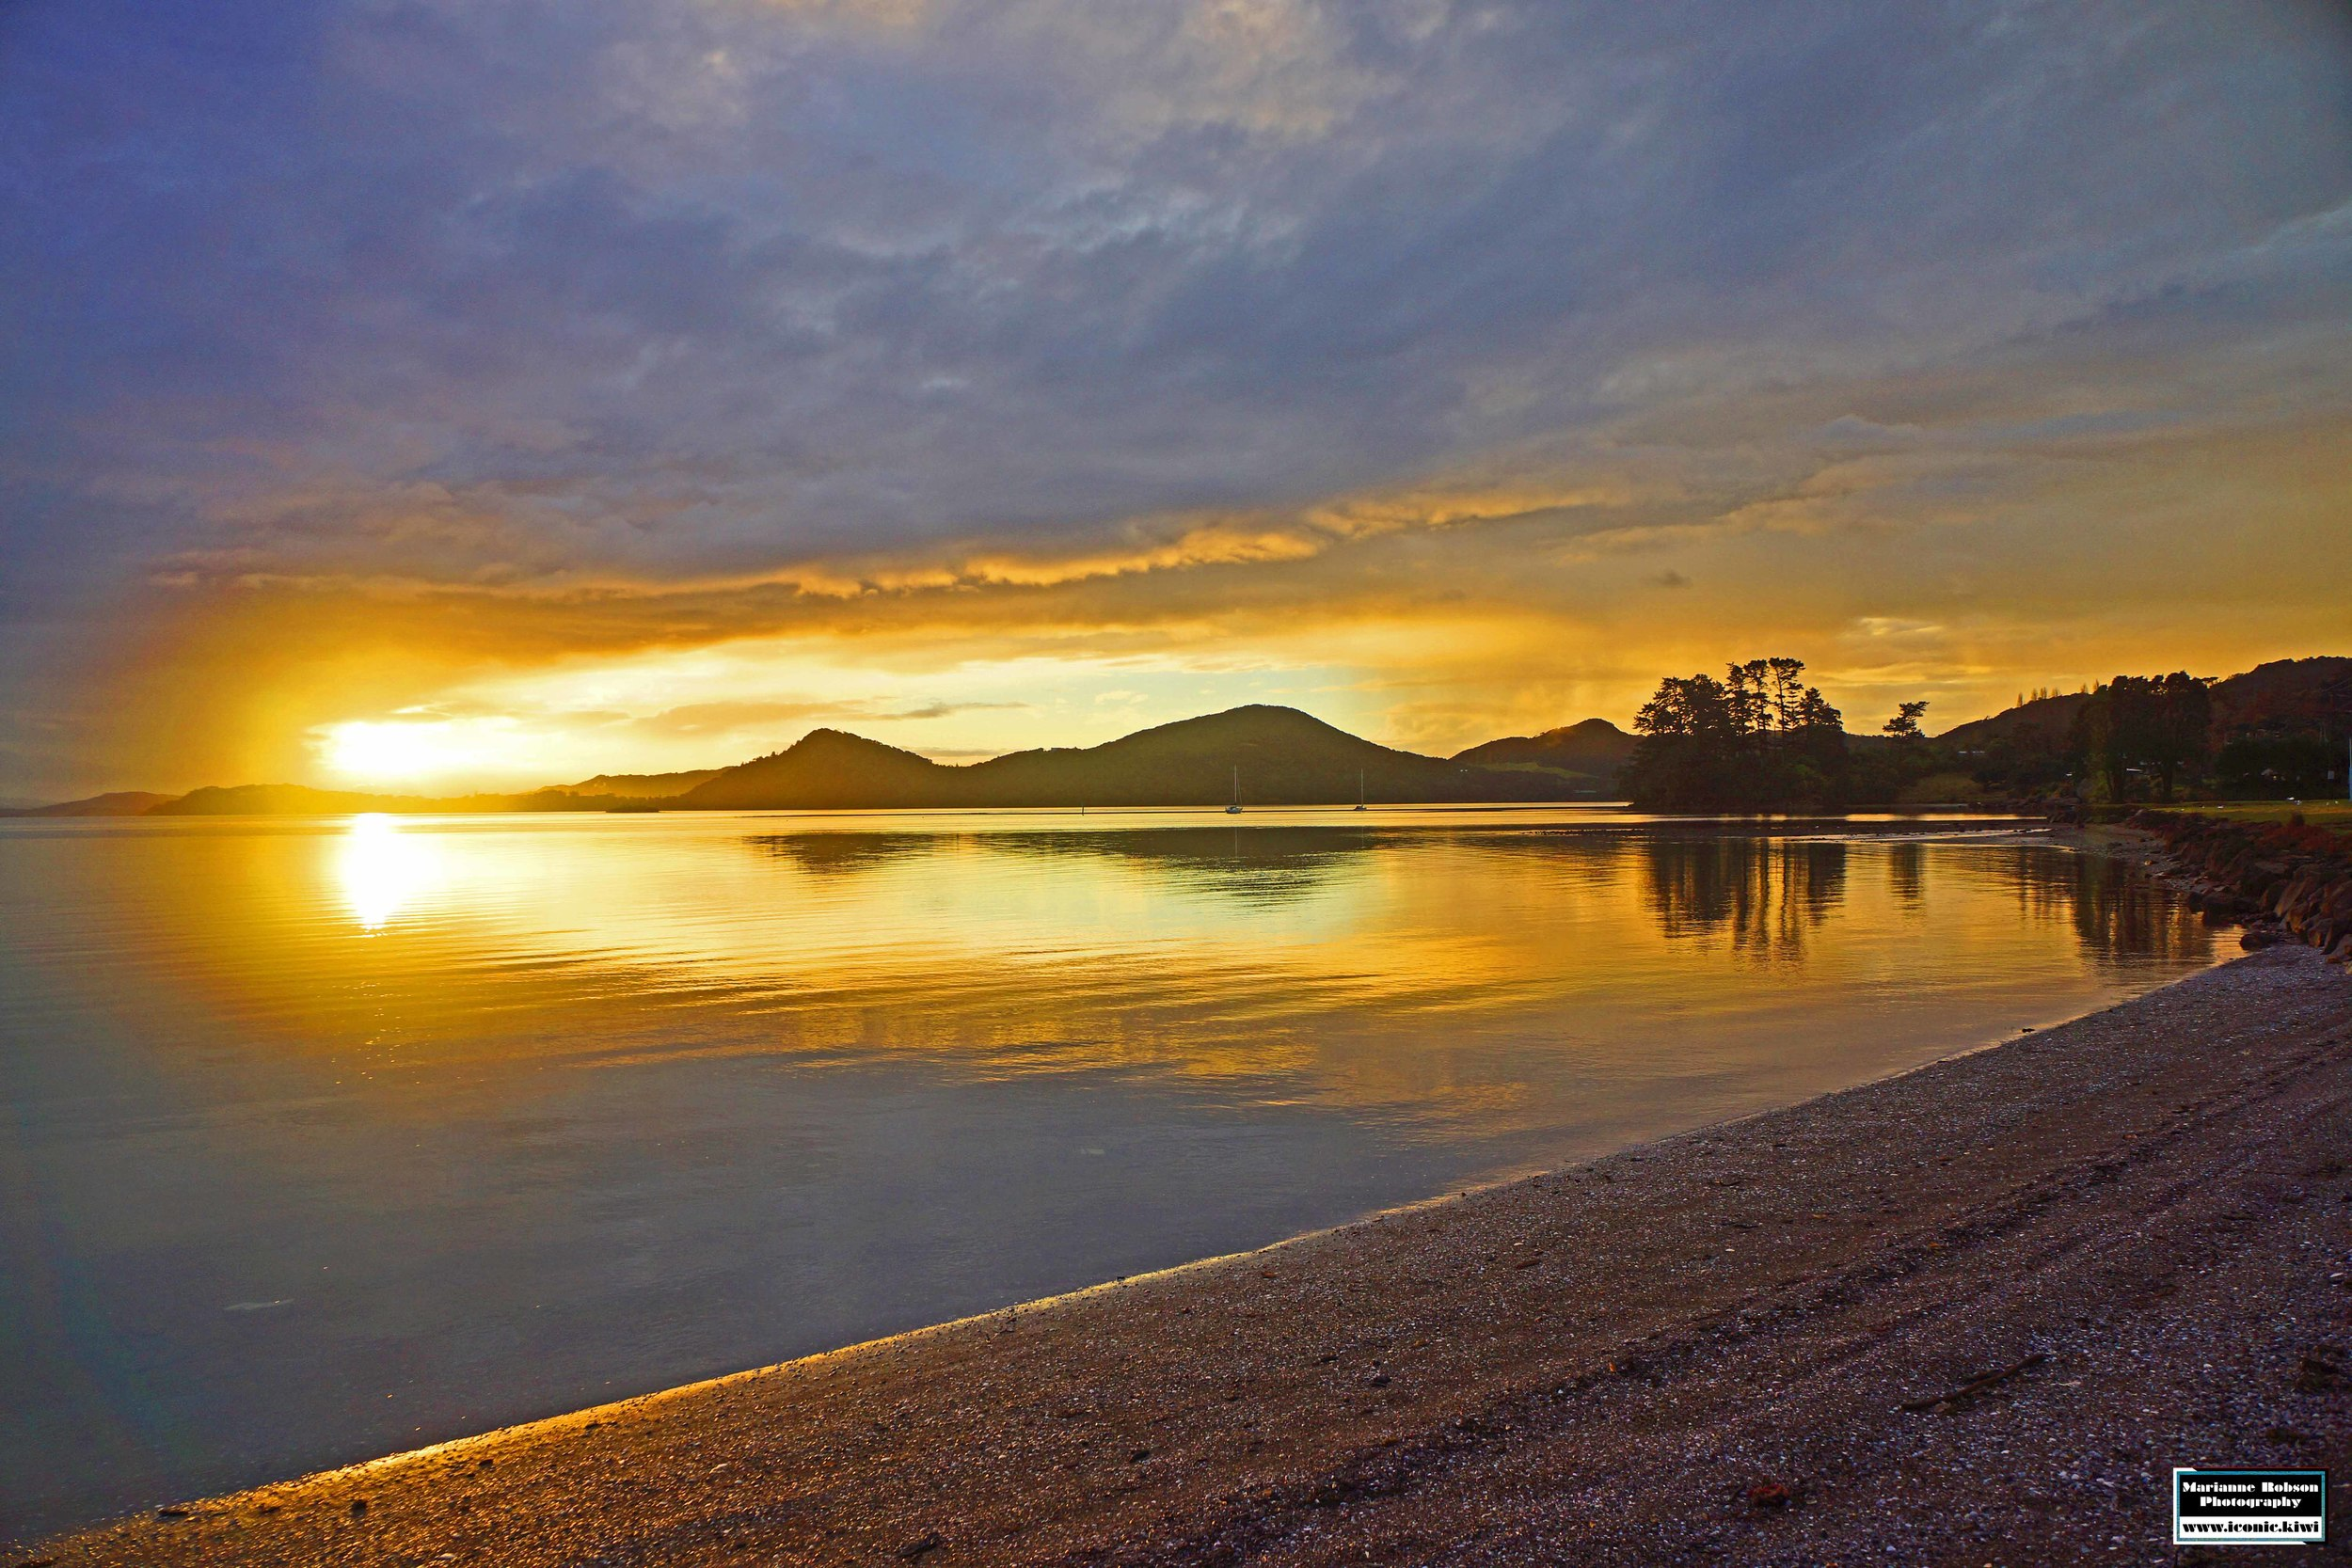 This sunset features in the 2015 calendar - March